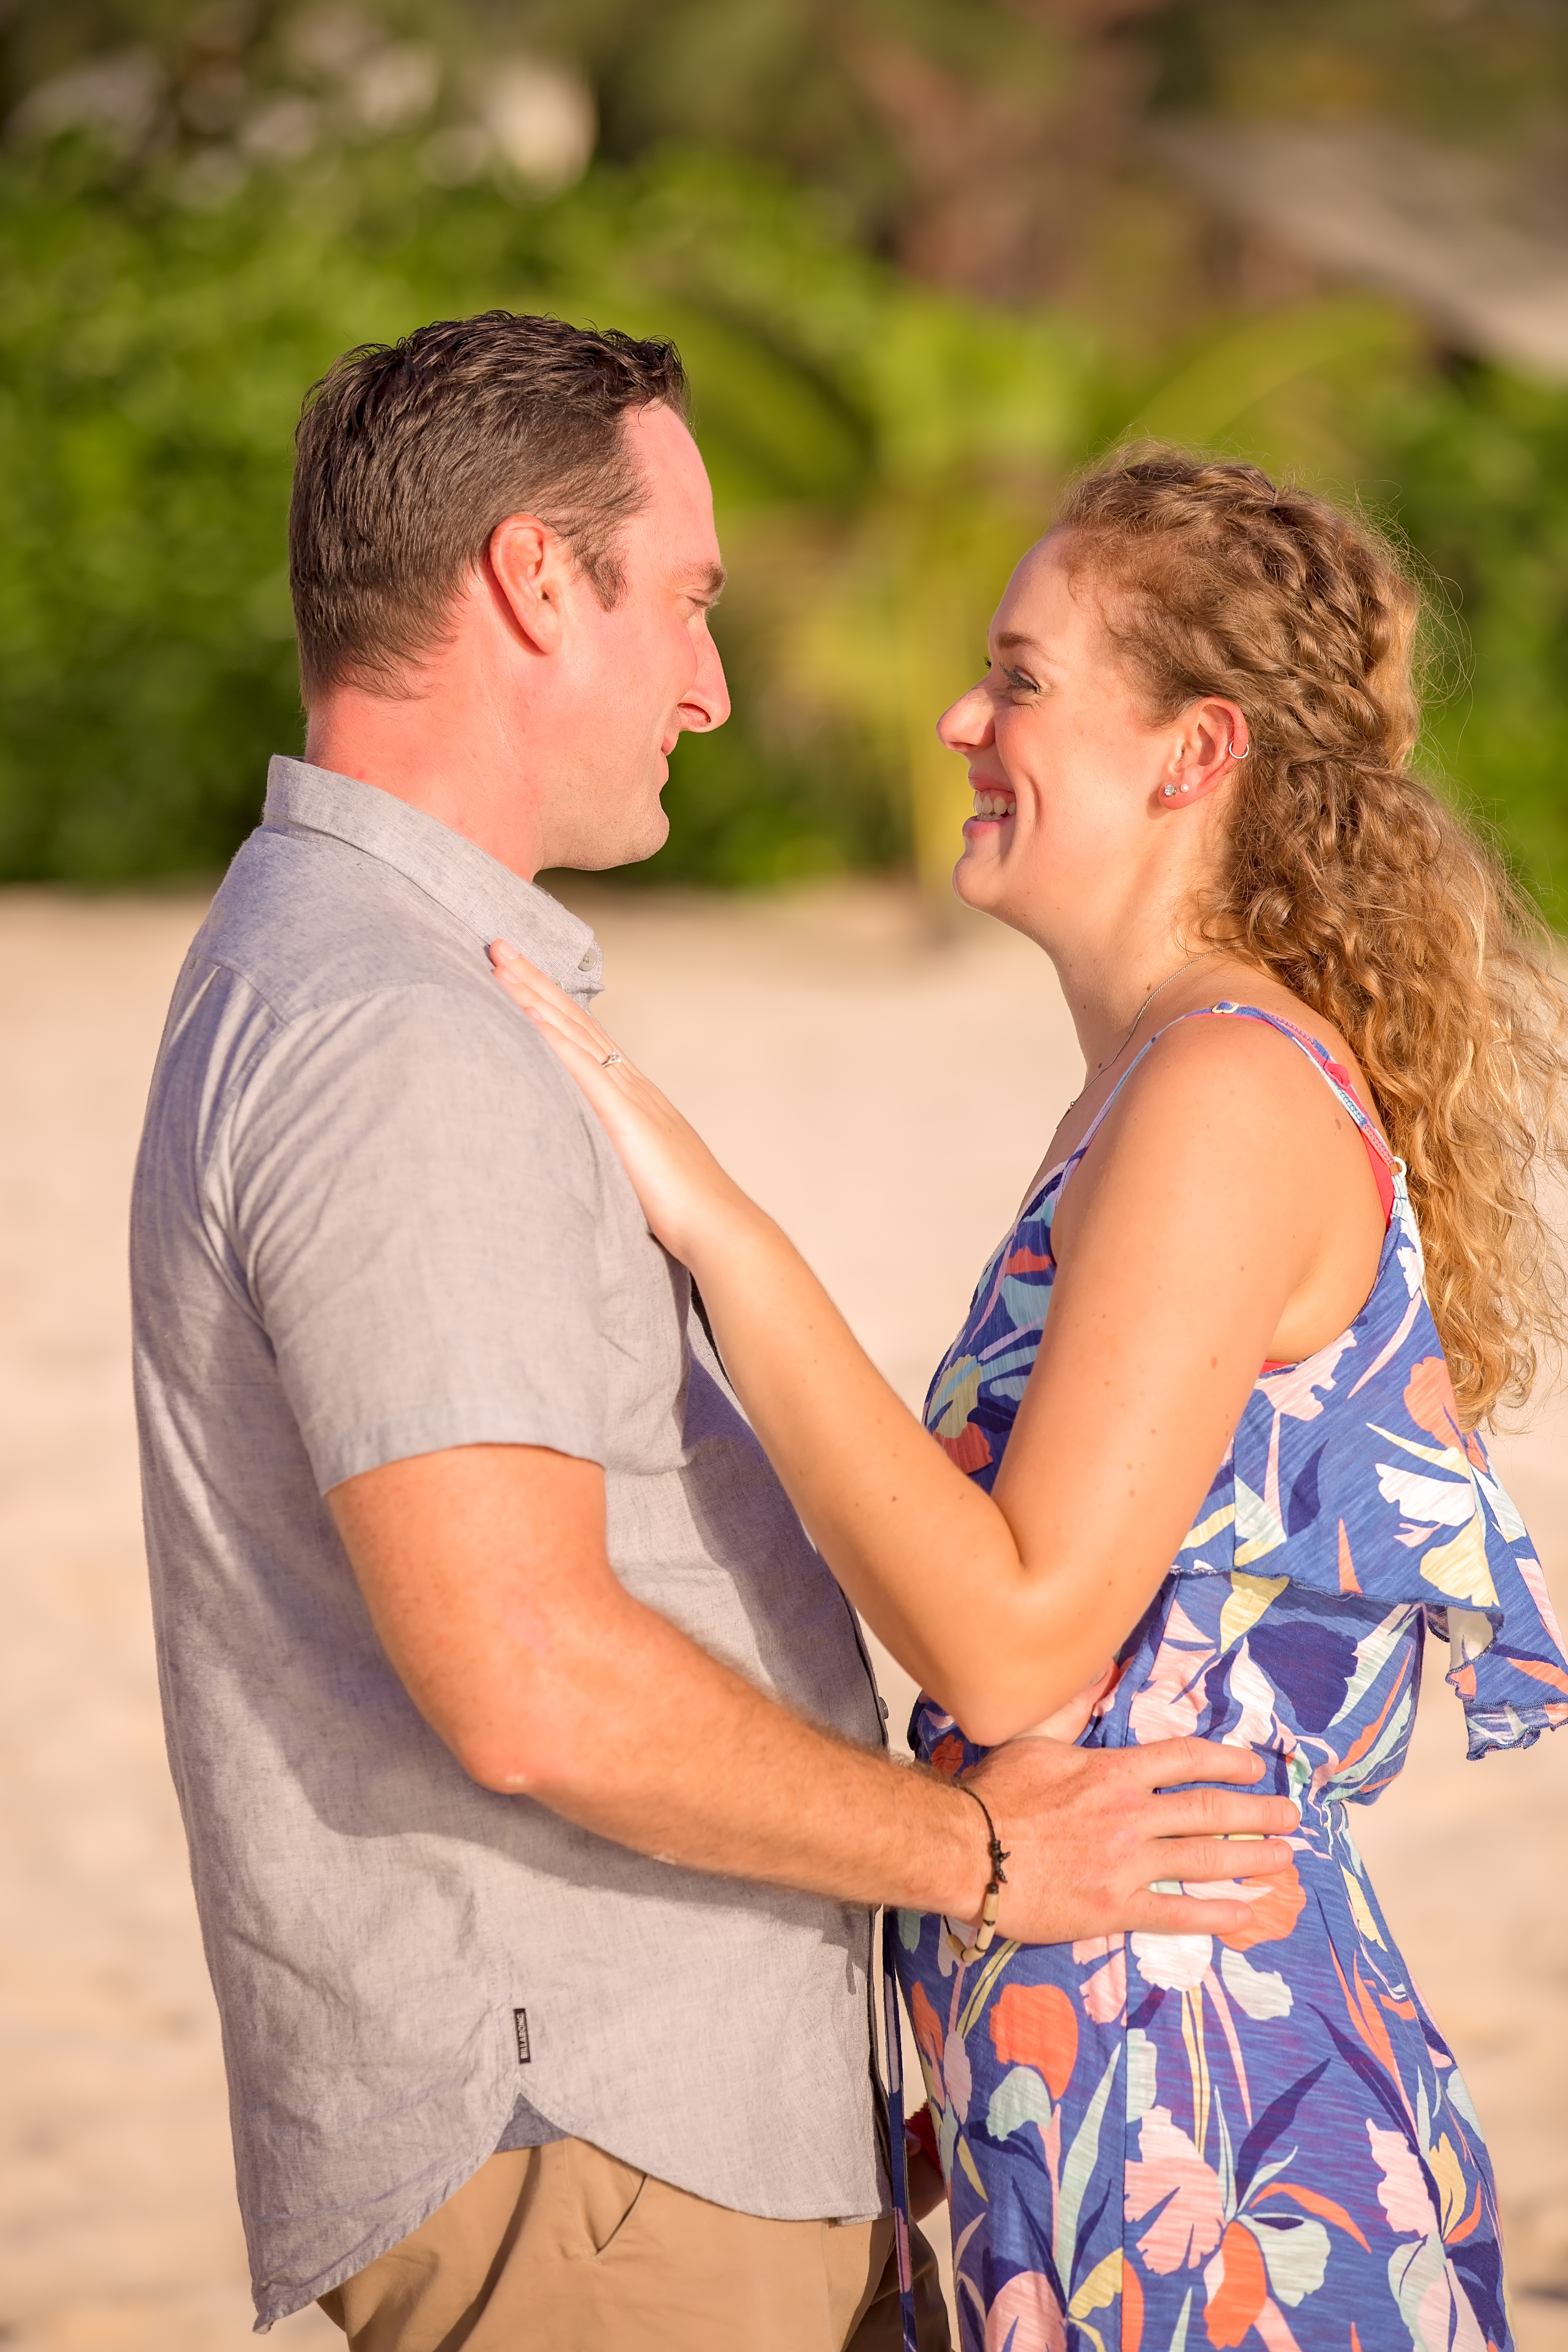 A Stunningly Simple Cayman Islands Engagement Shoot. Photography by Guy Waller Photography, Picture This Studios for Destination Wedding Blog Adriana Weddings